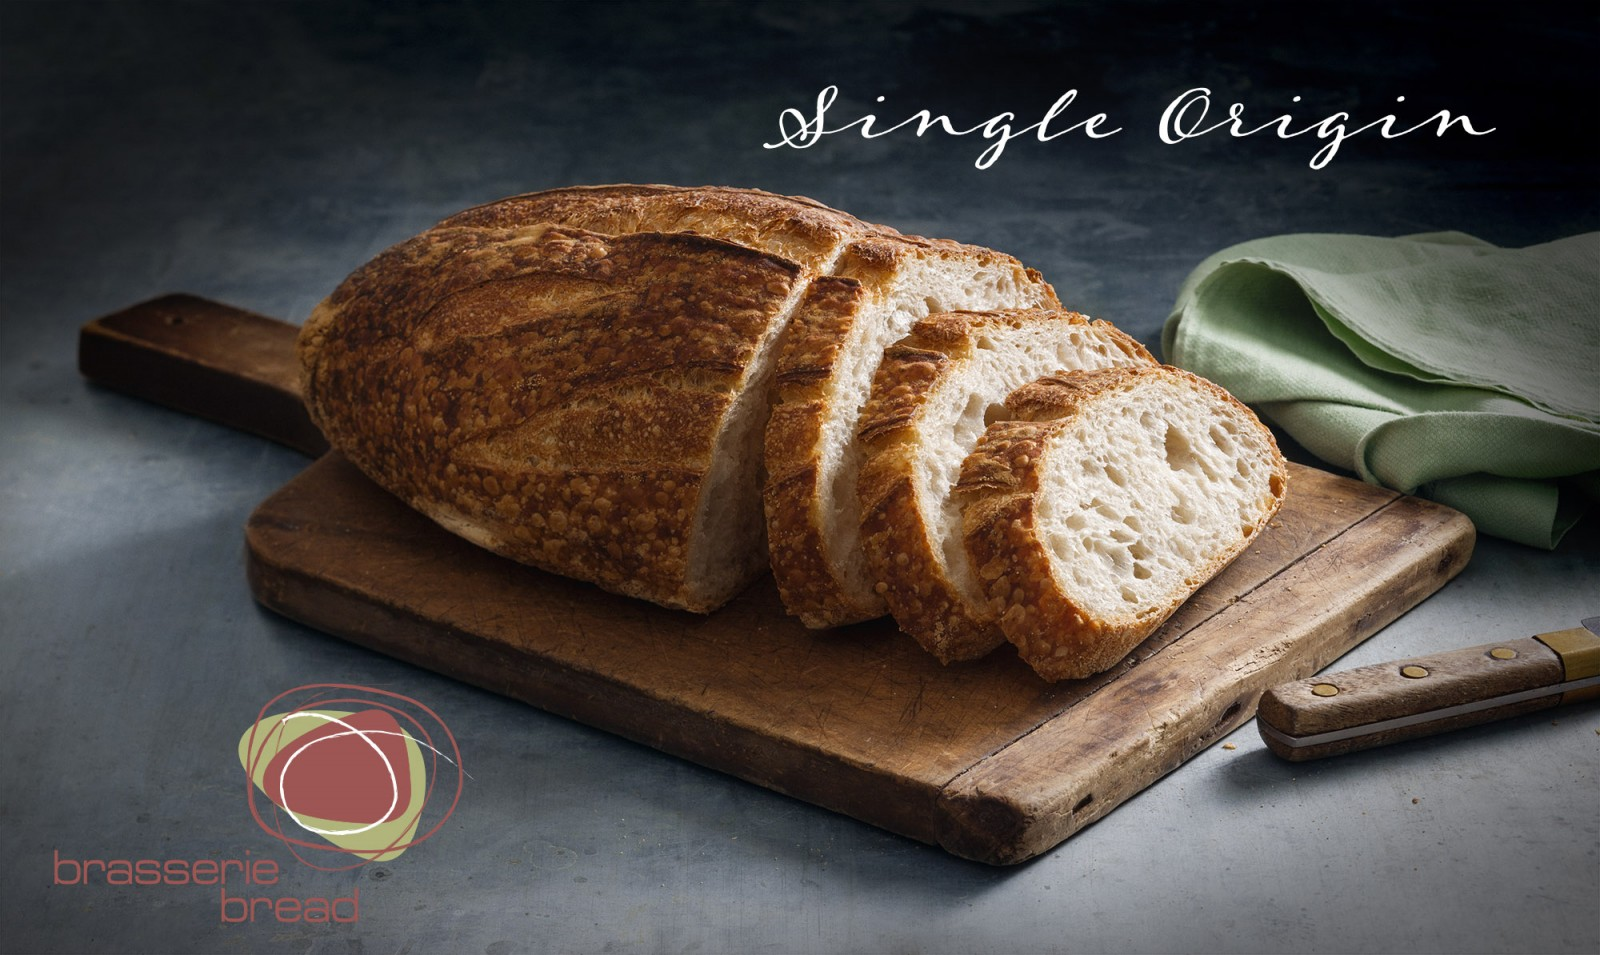 Brasserie Bread Single Origin Sourdough Michelle Young and Andrew Young sydney advertising photographer in food people kids fashion baby portrait wine and food and travel photography. Advertising in...